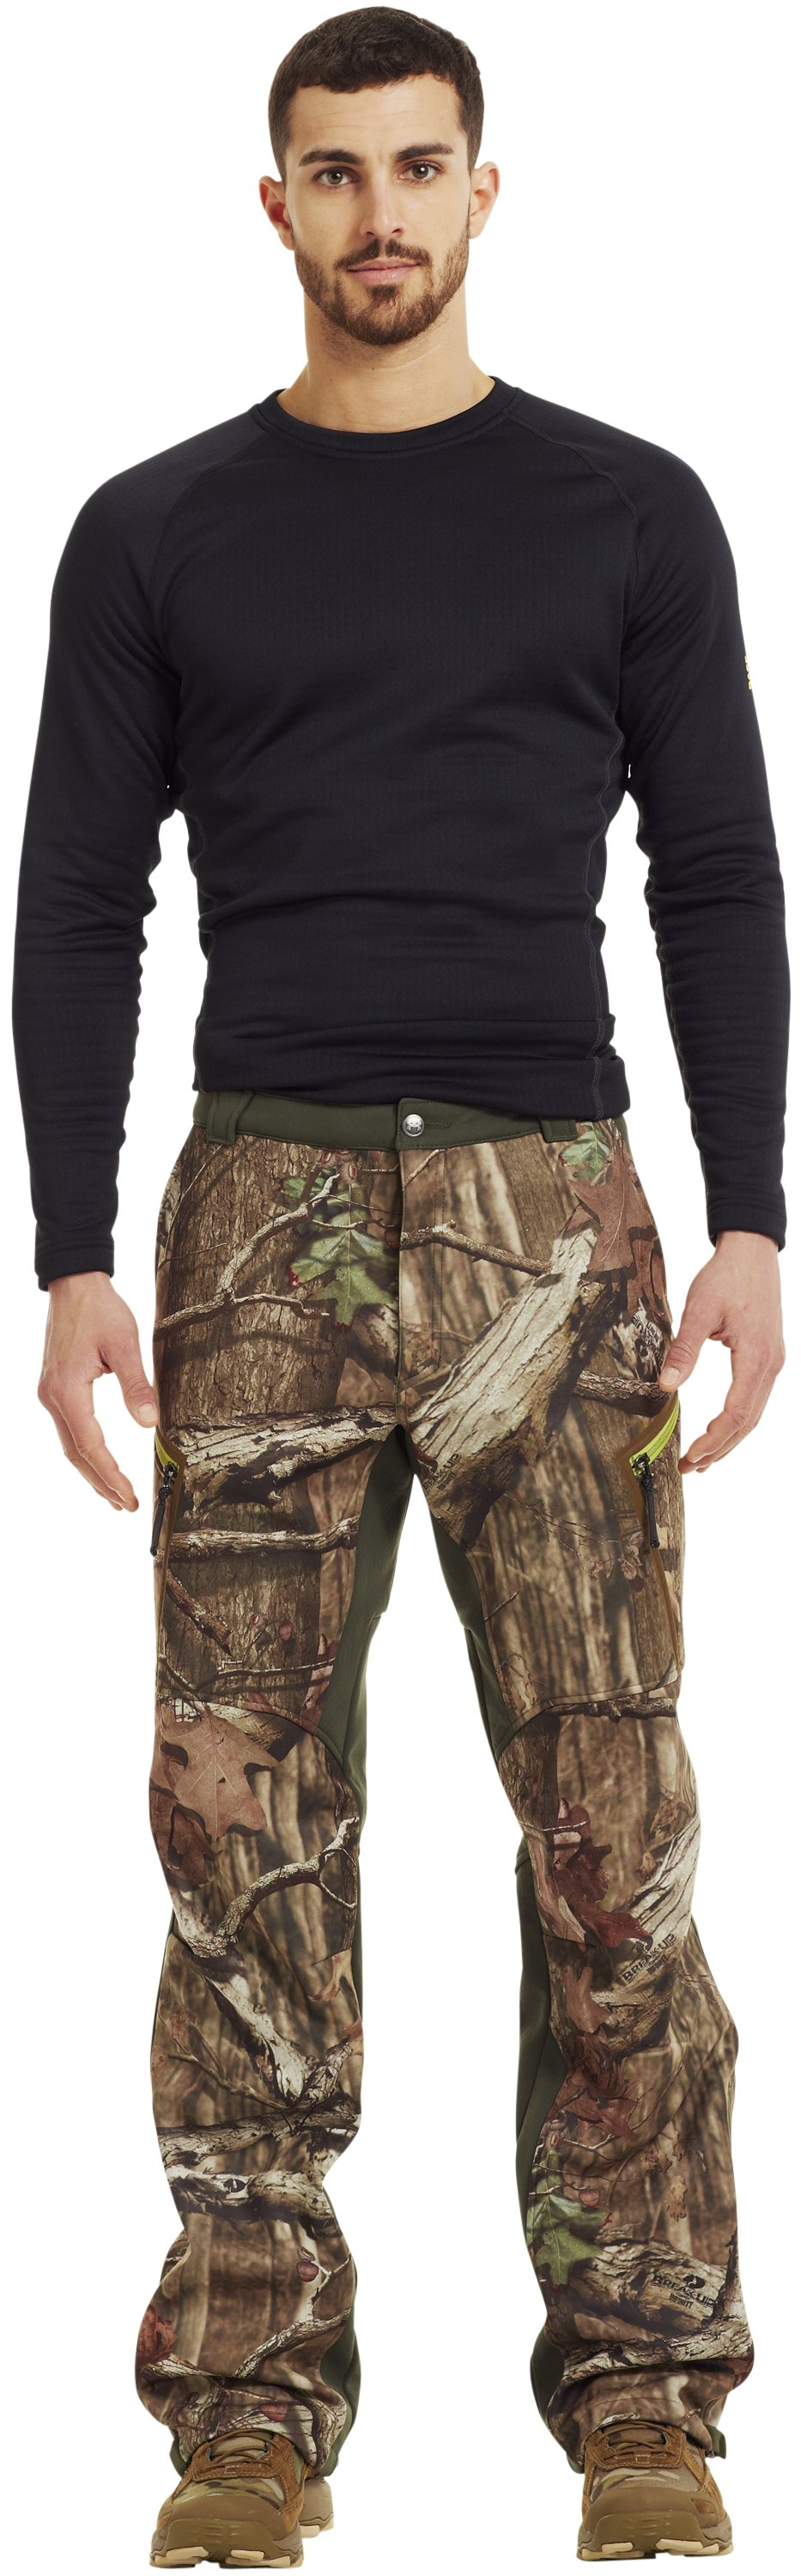 Men's ColdGear® Infrared Ridge Reaper® Softshell Pants, Mossy Oak Break-Up Infinity, Front